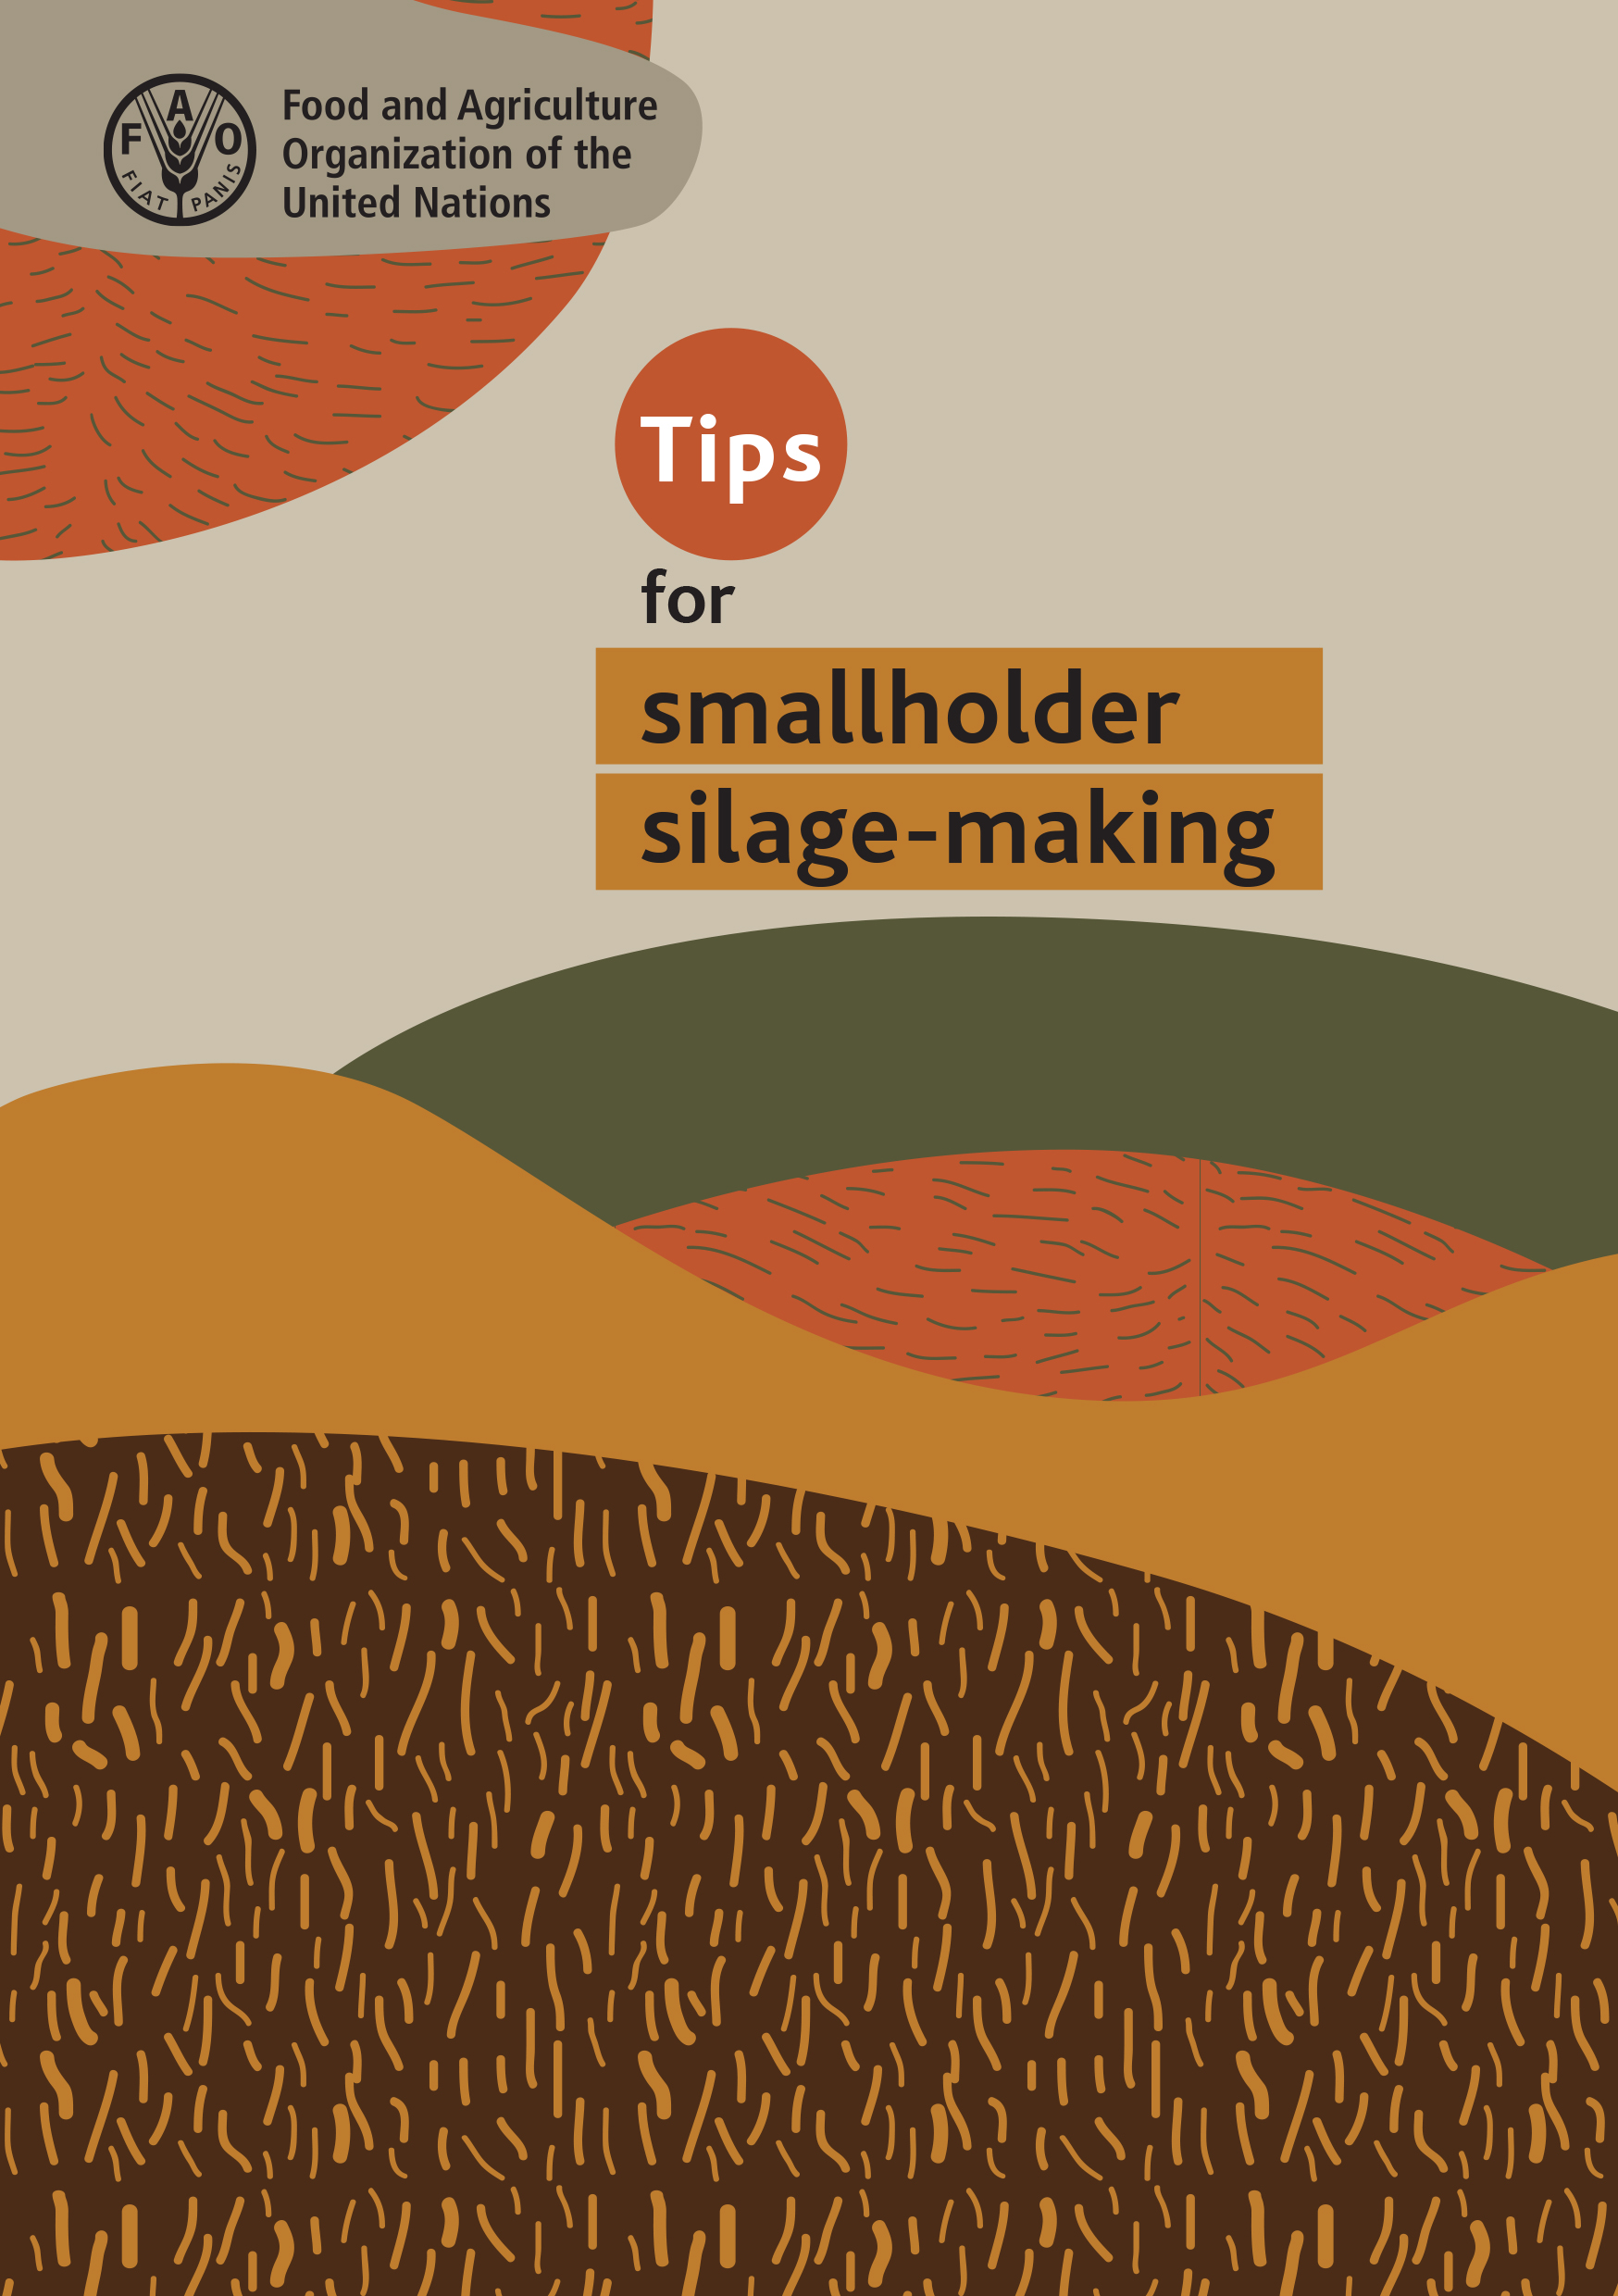 Tips for Smallholder silage-making